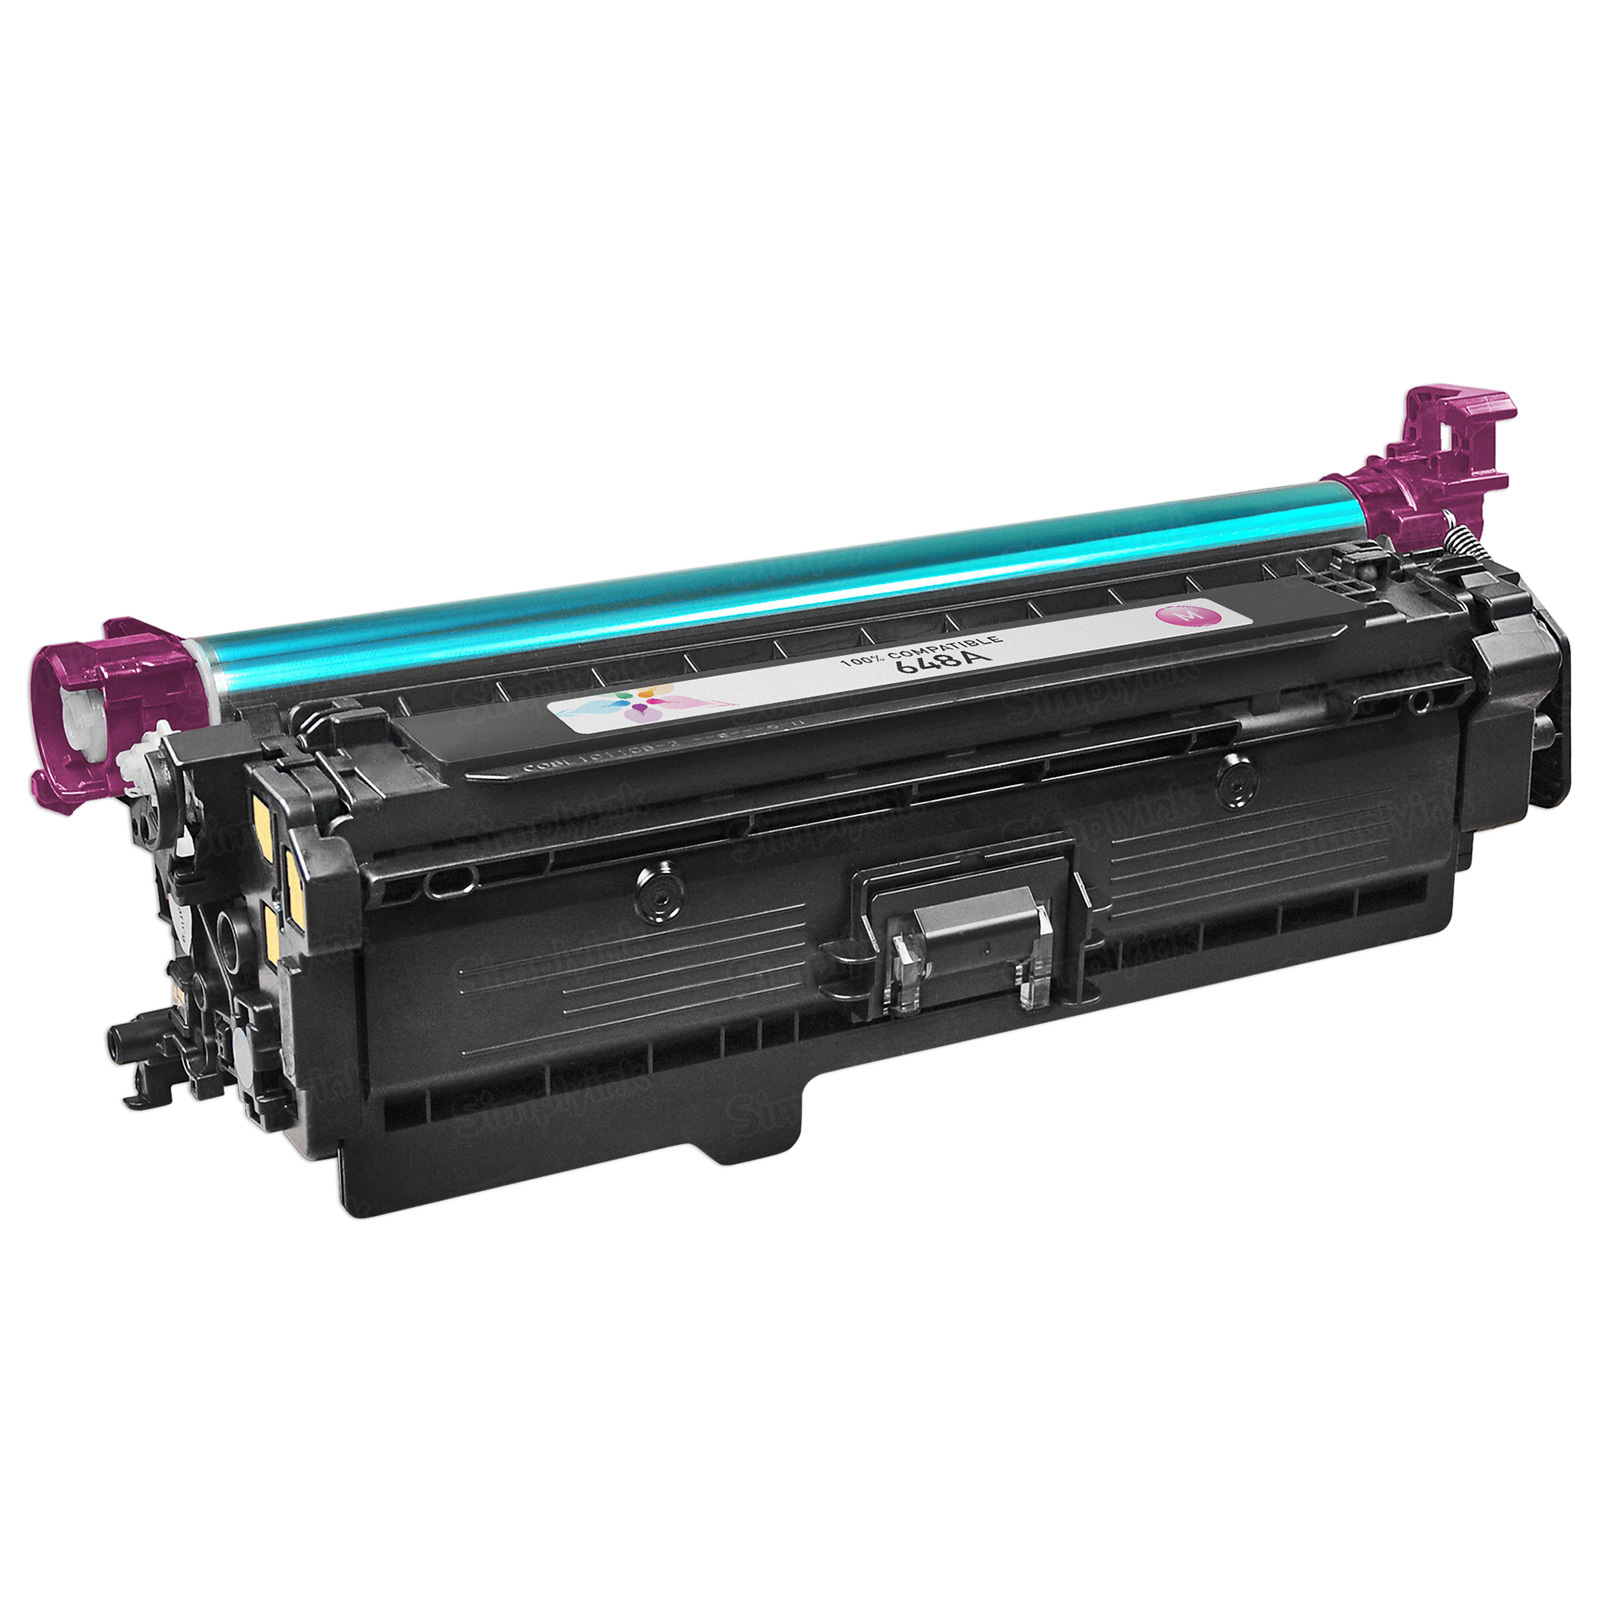 Remanufactured Replacement Magenta Laser Toner for HP 648A